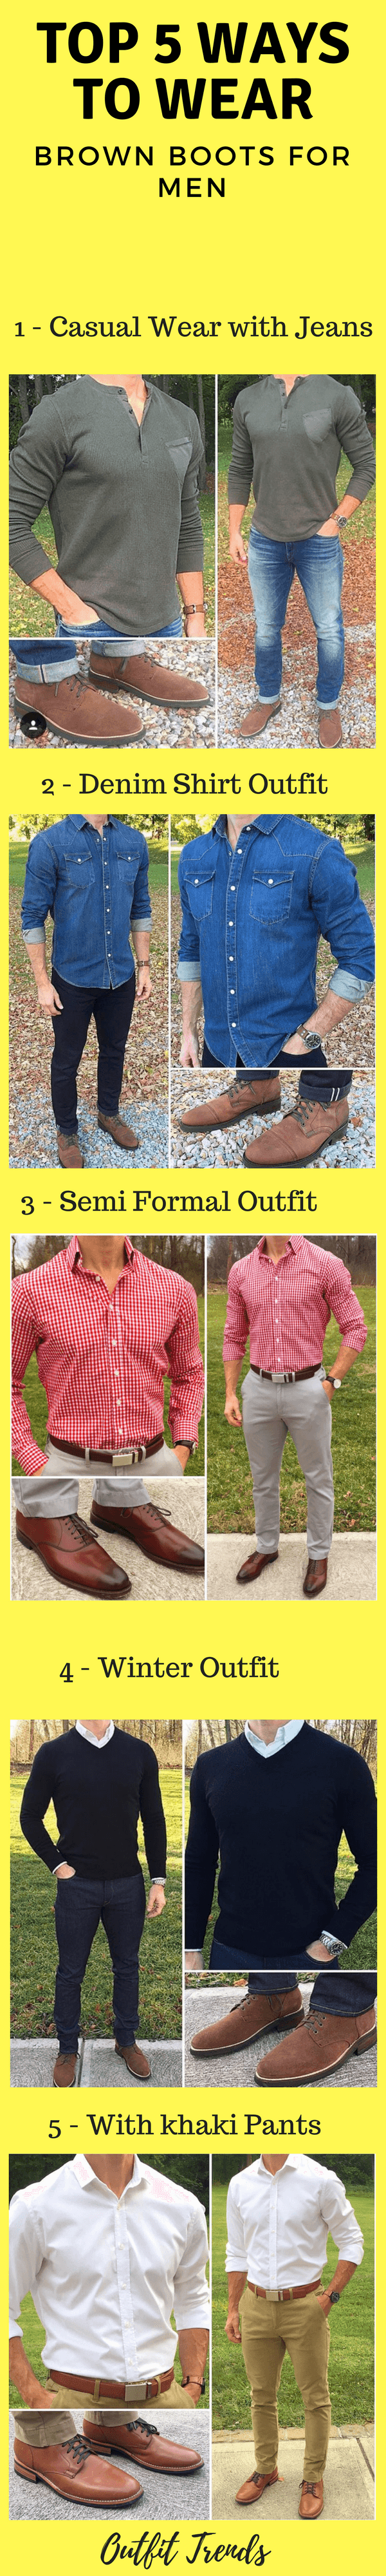 How to wear brown boots for men